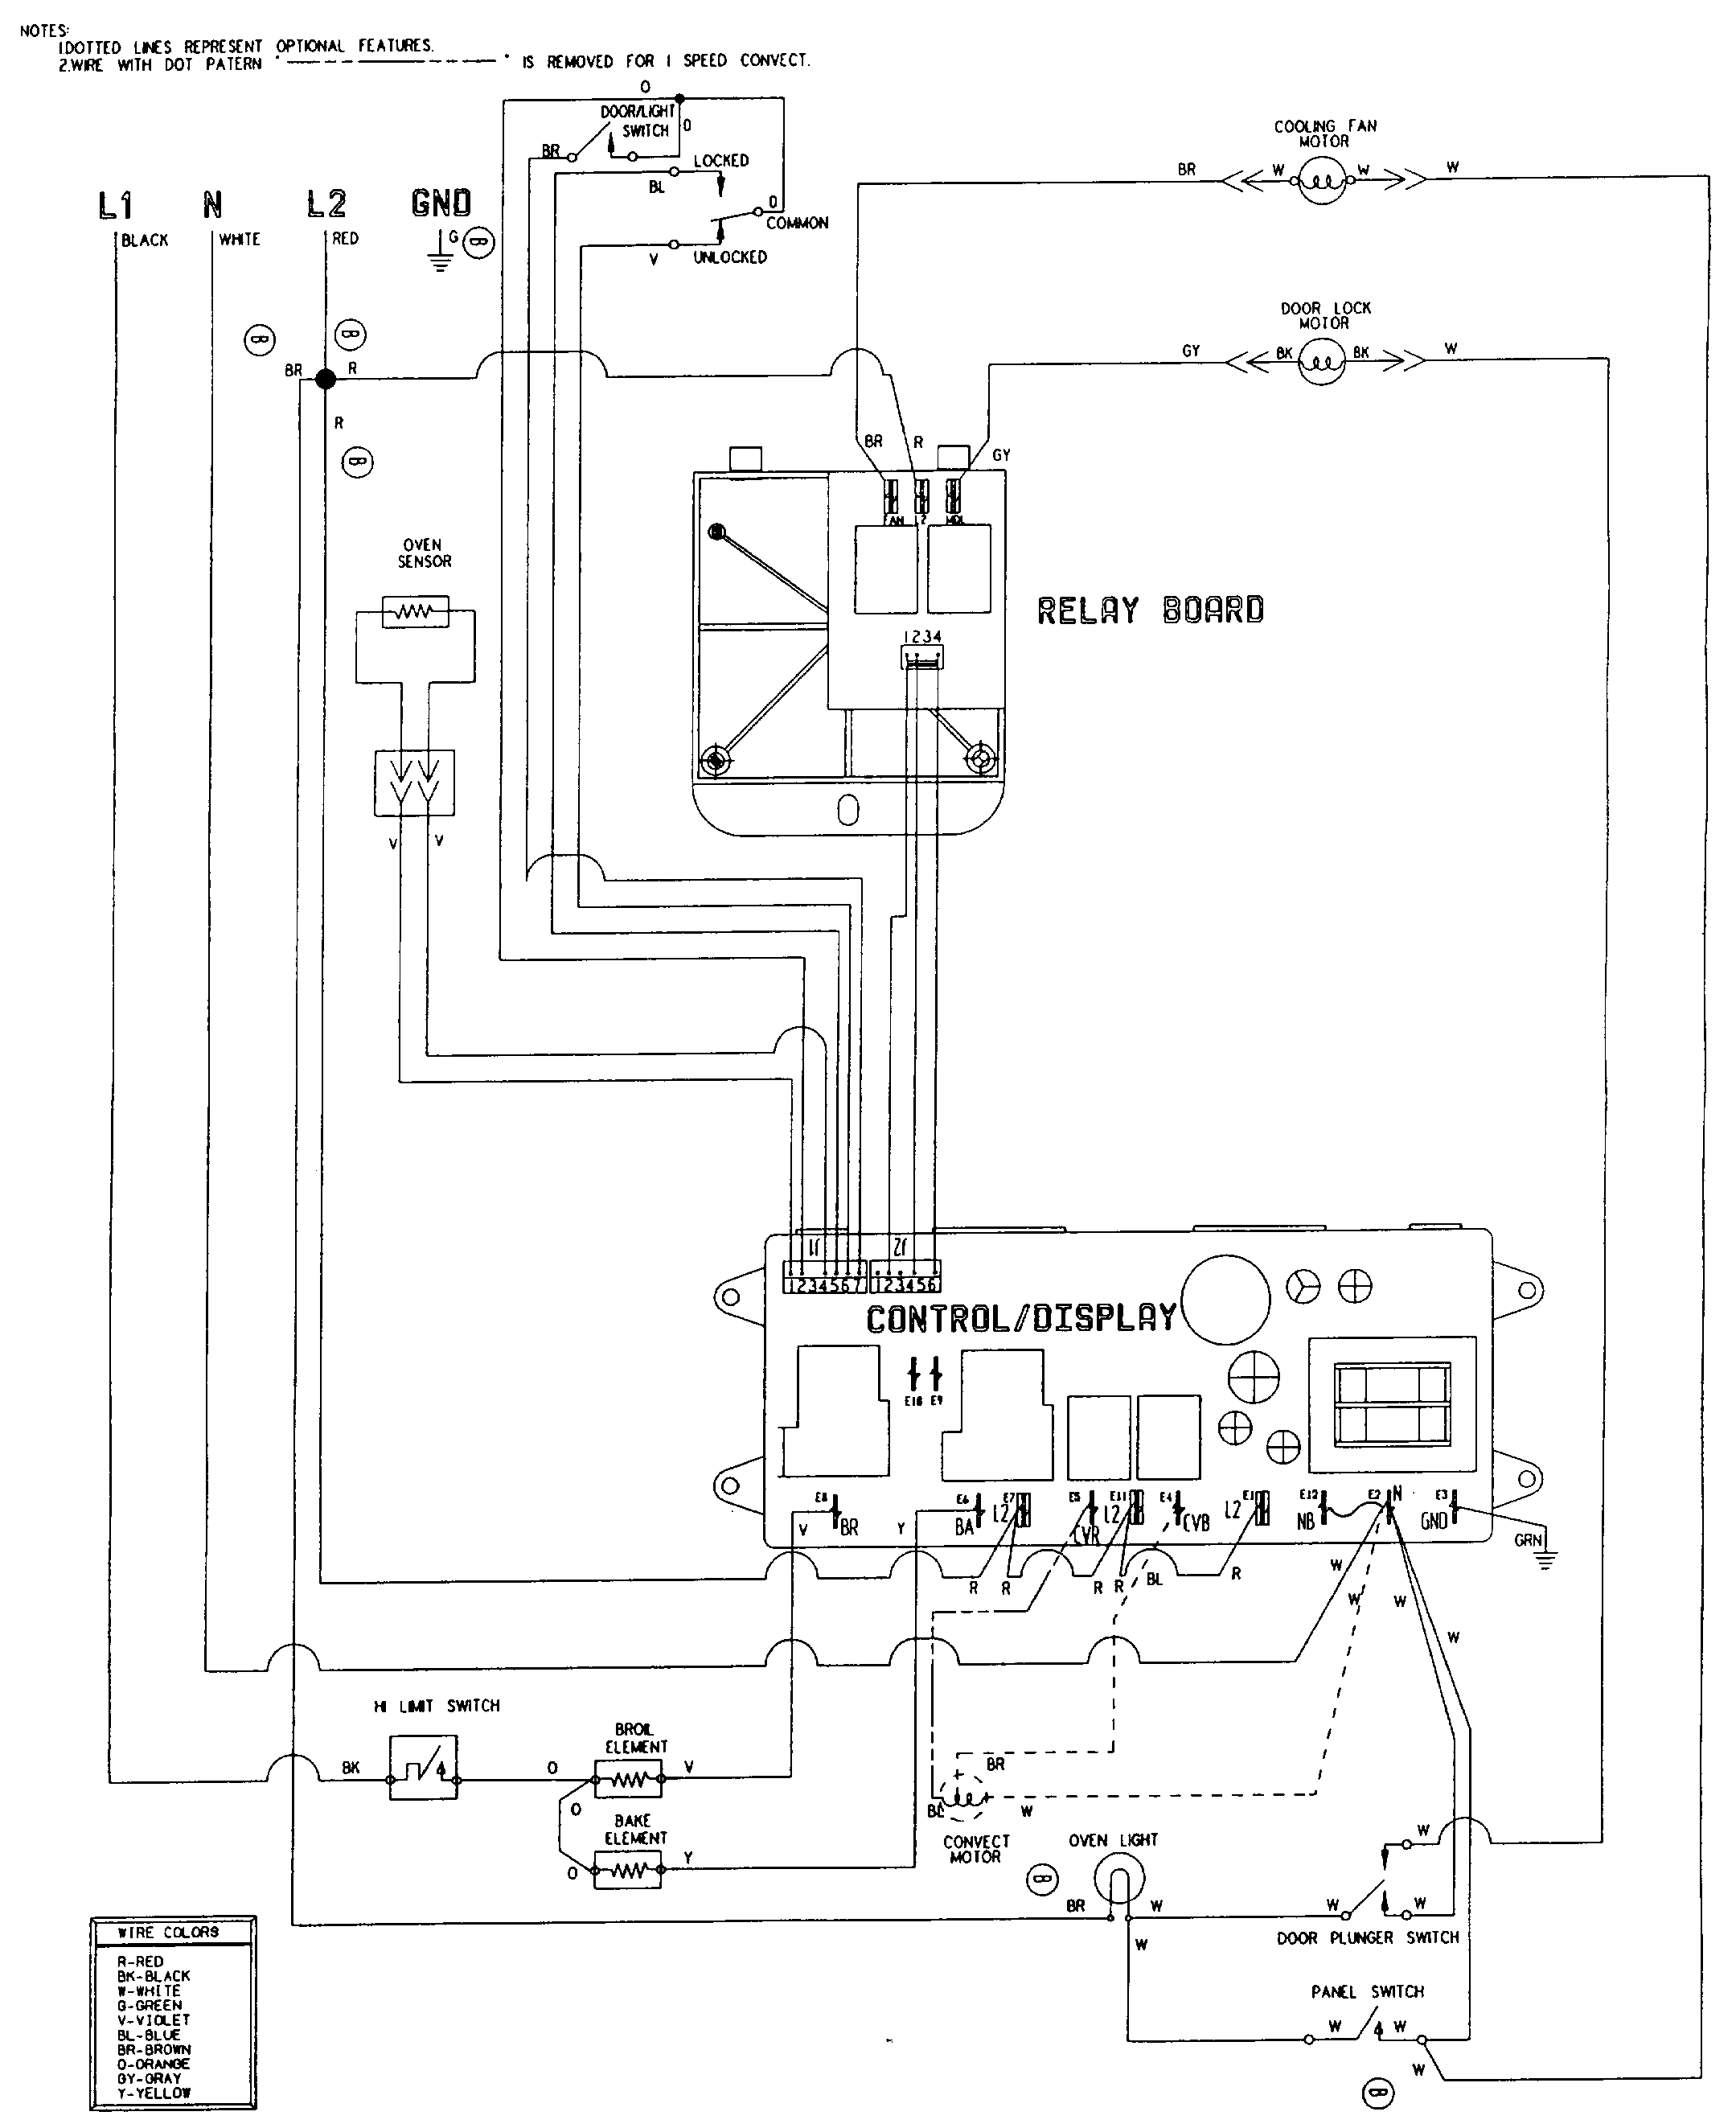 Unique Wiring Diagram Of Electric Cooker Diagram Diagramsample Diagramtemplate Wiringdiagram Diagramchart Worksheet Diagram Diagram Chart Electric Cooker